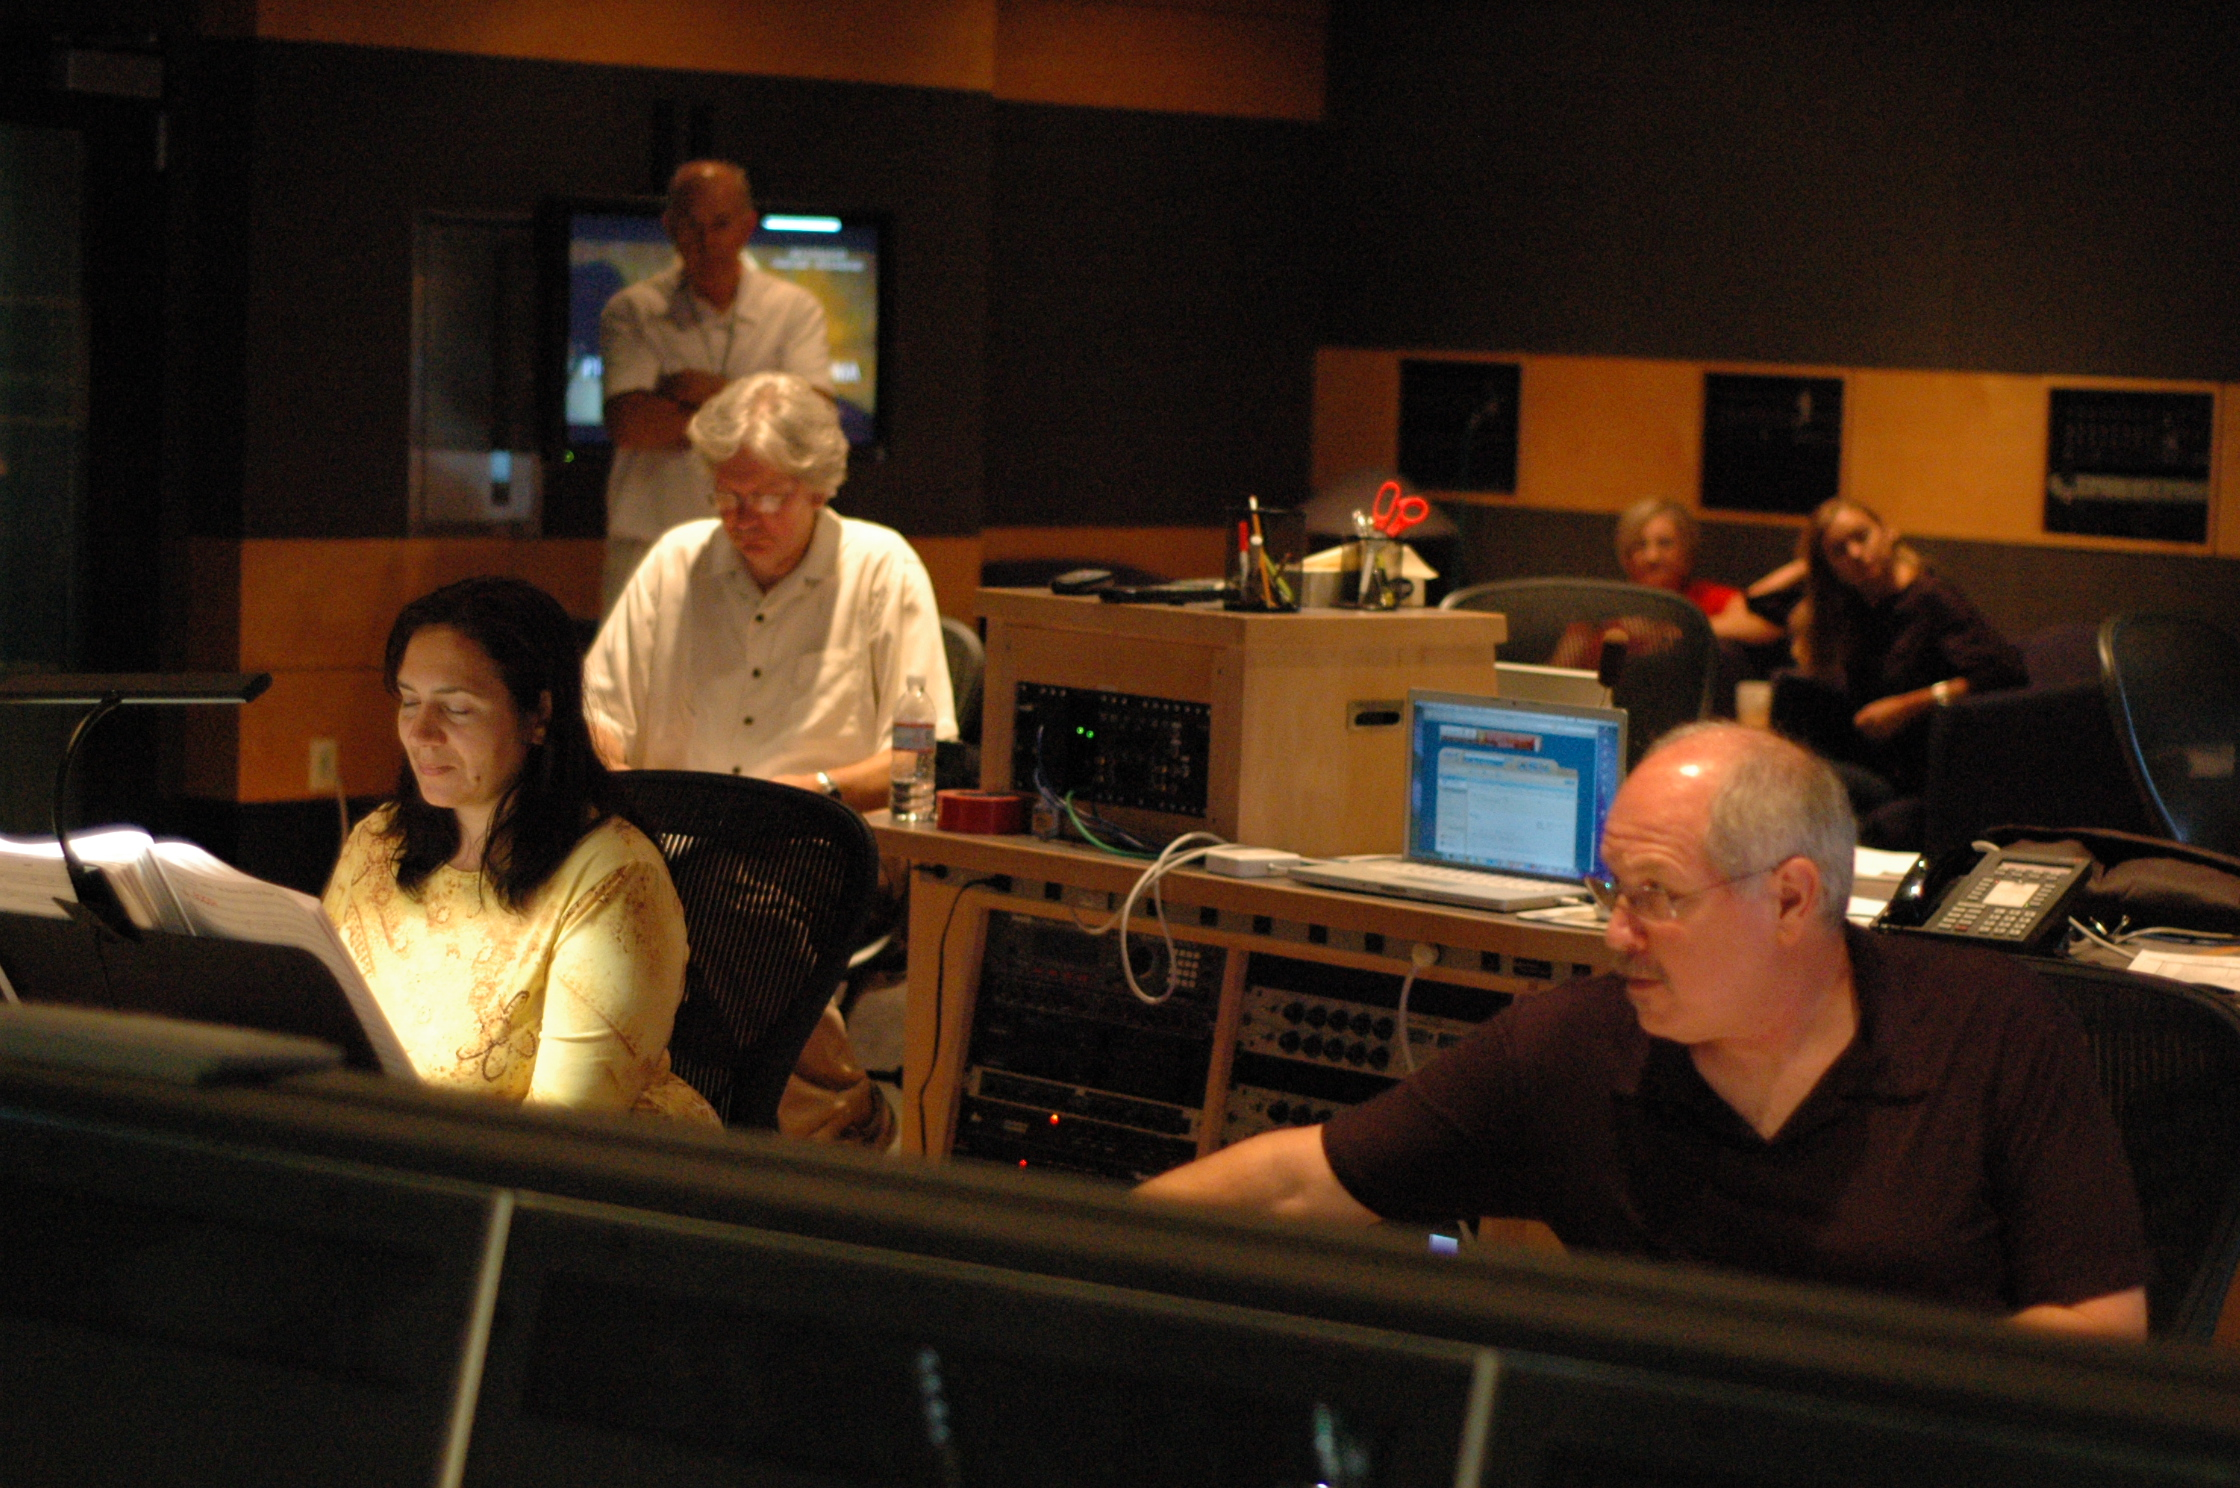 From left to right:   Penka Kouneva, Pat Russ (behind), orchestrators  Dennis Sands, score mixer